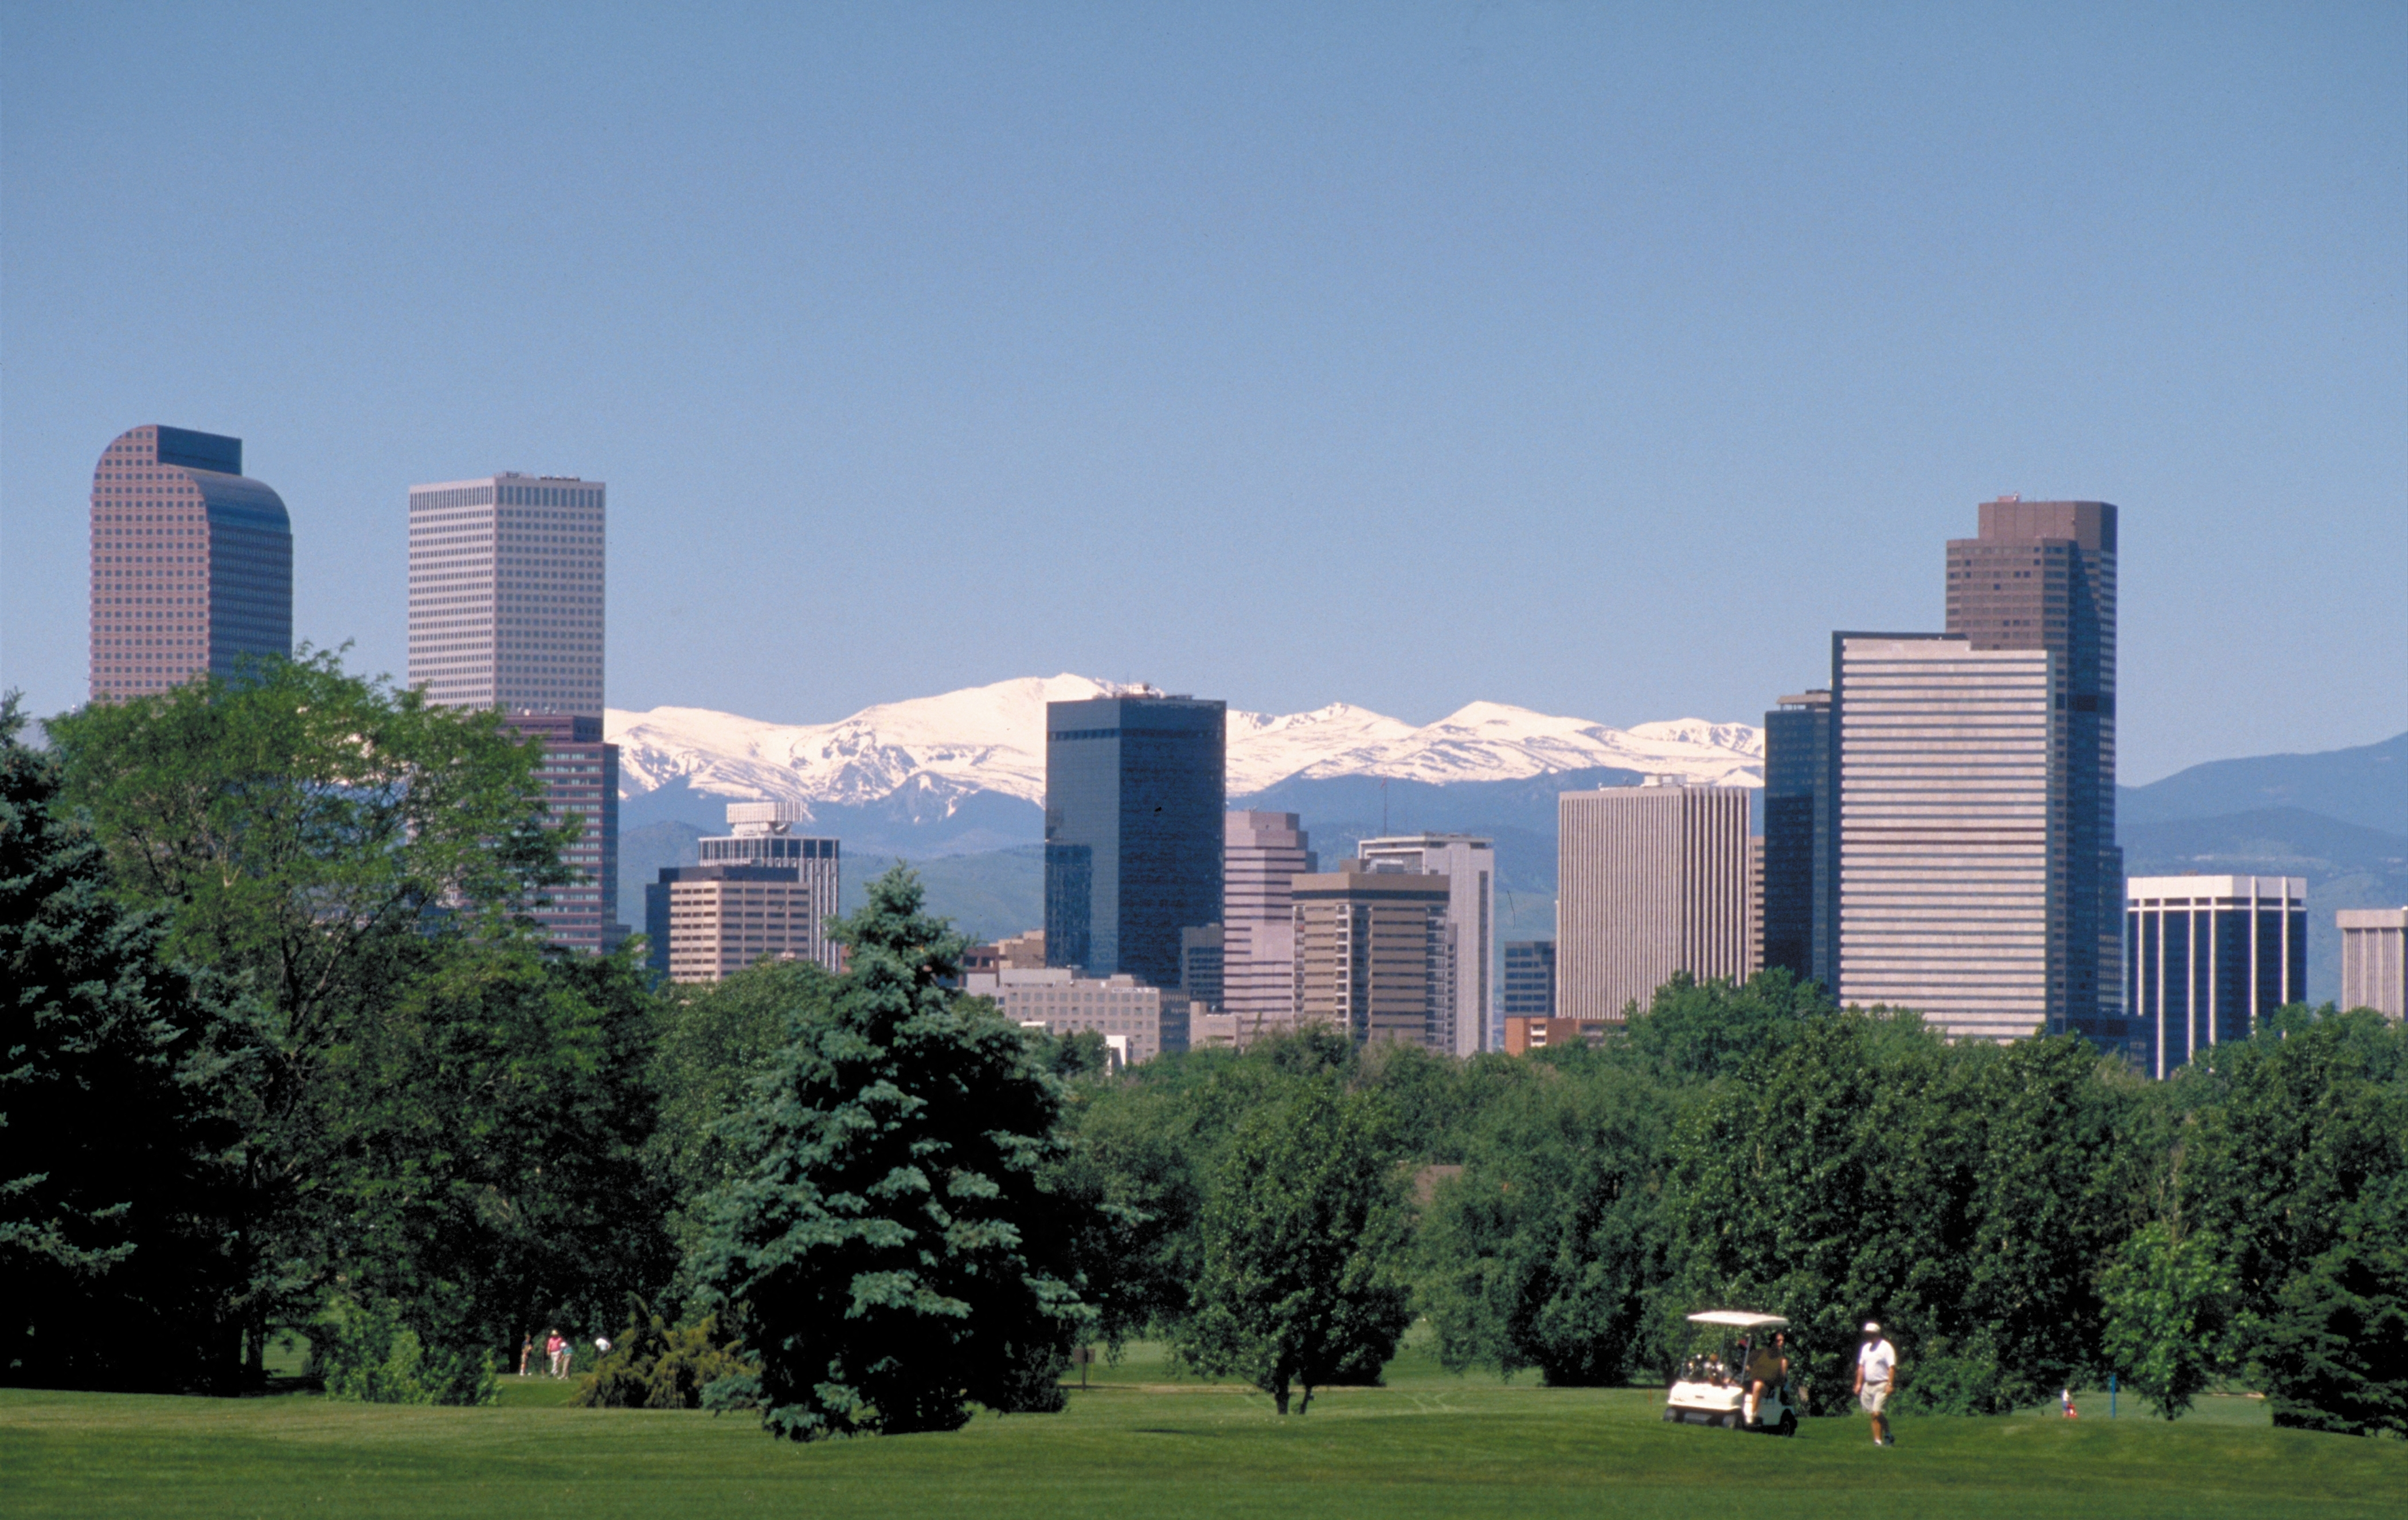 denver how about CO HD Wallpaper